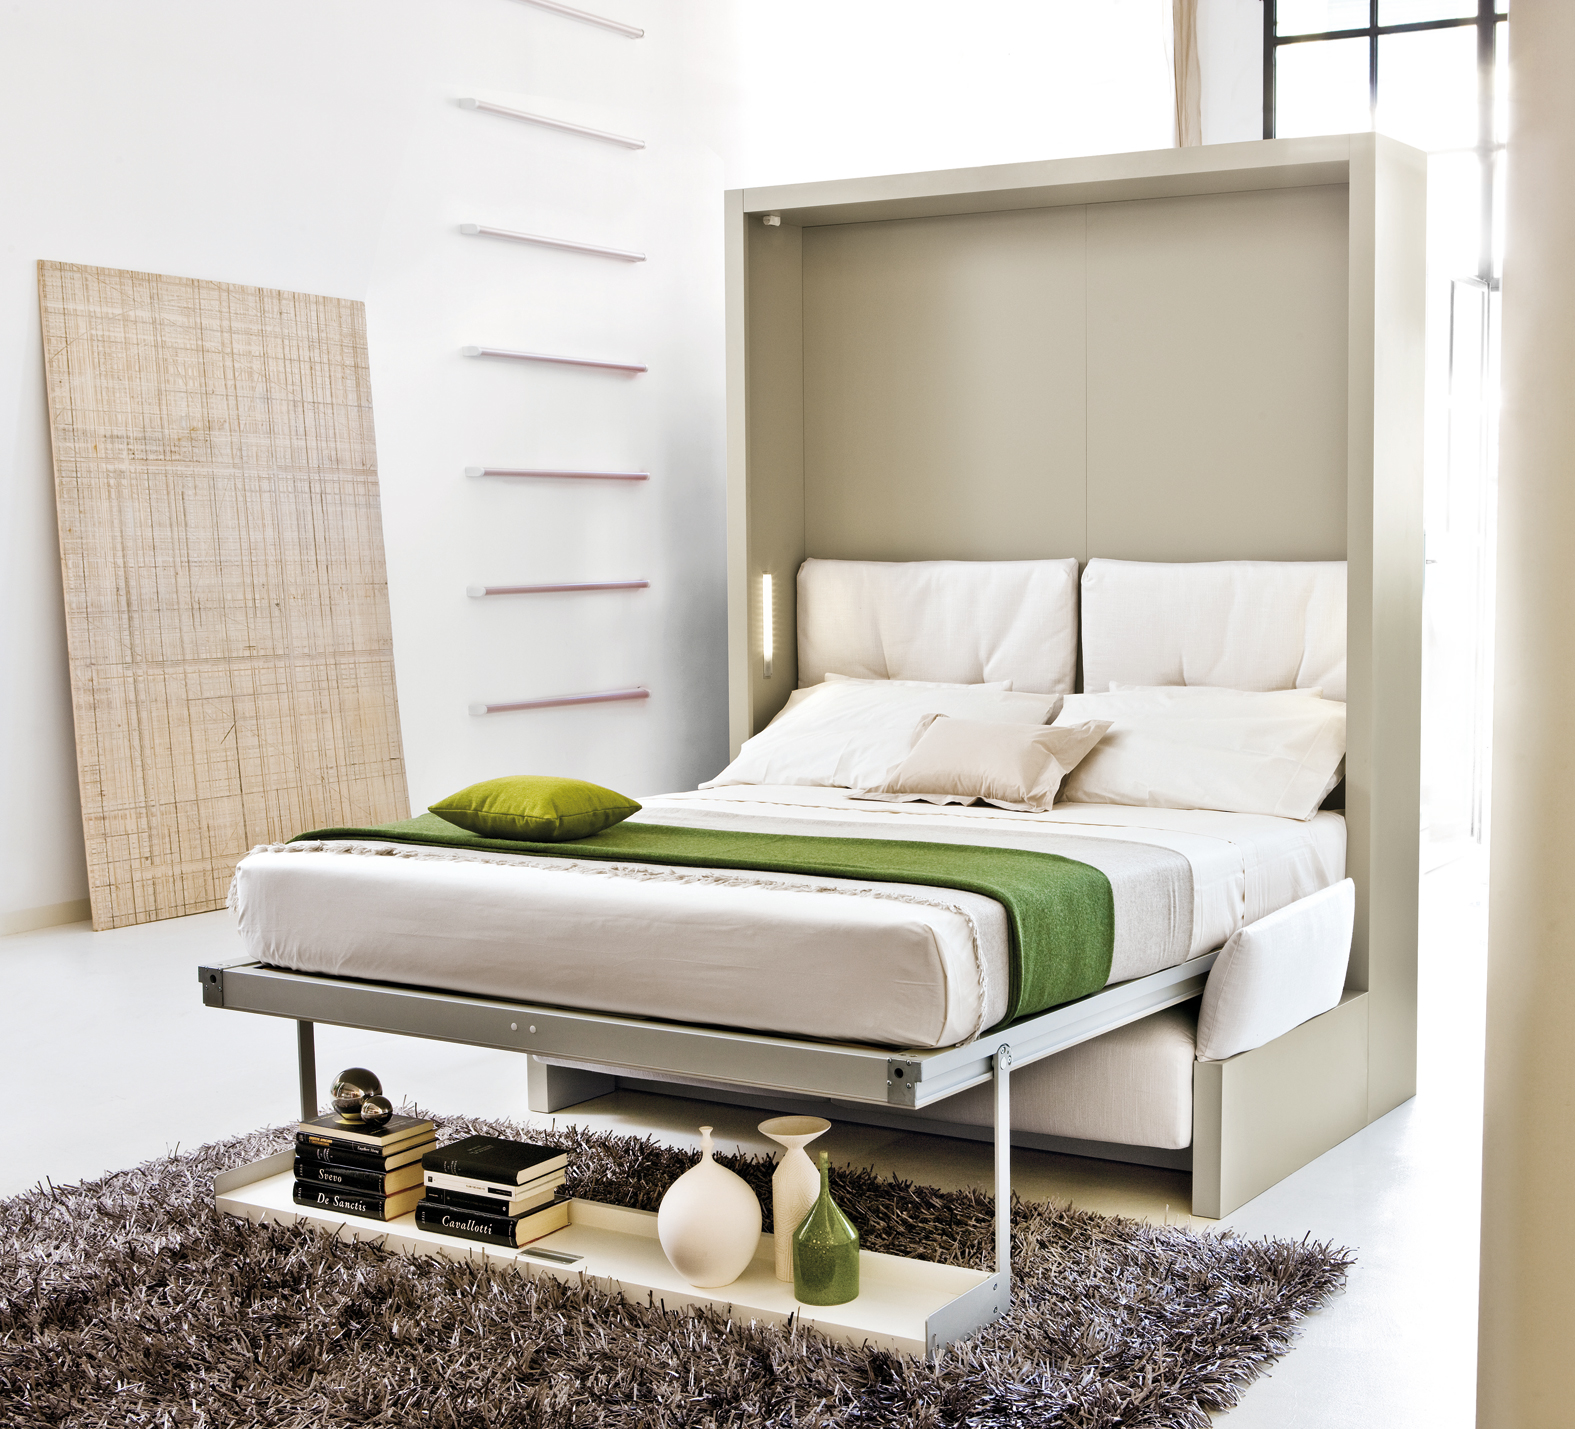 Nuovoliola Wall Bed Clei Wall Beds London 239 191 189 Free